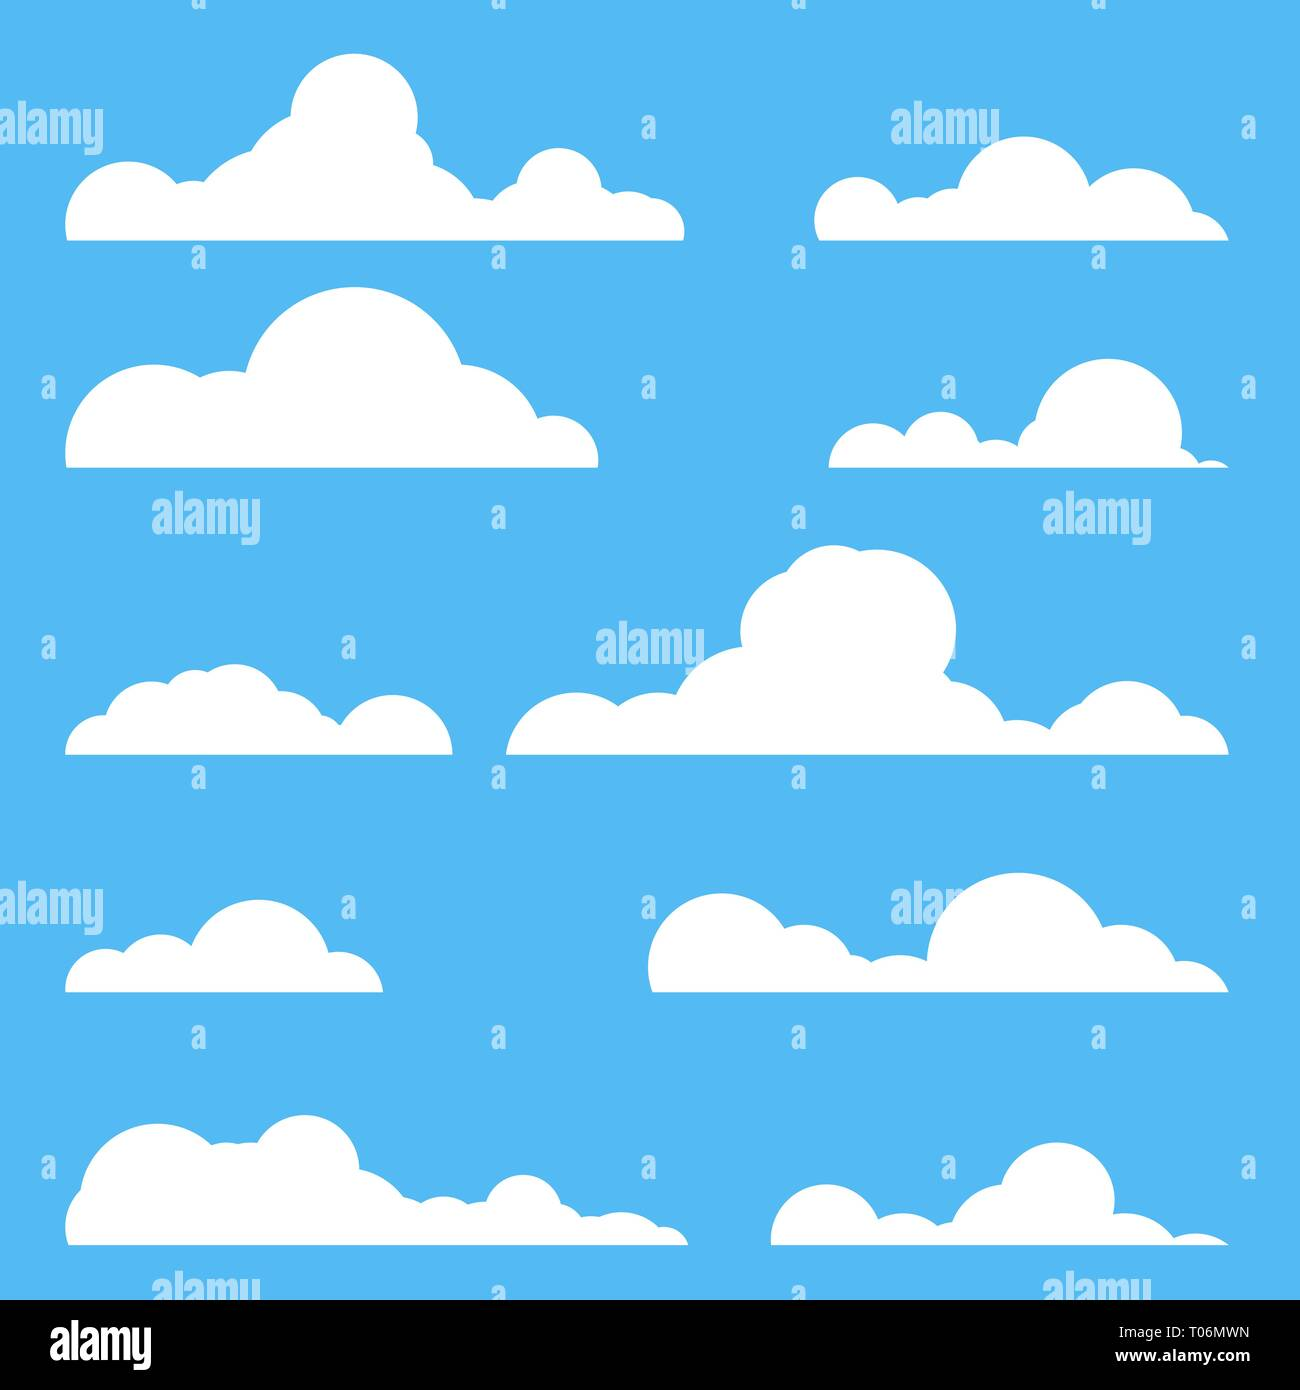 Set of clouds - Stock Image